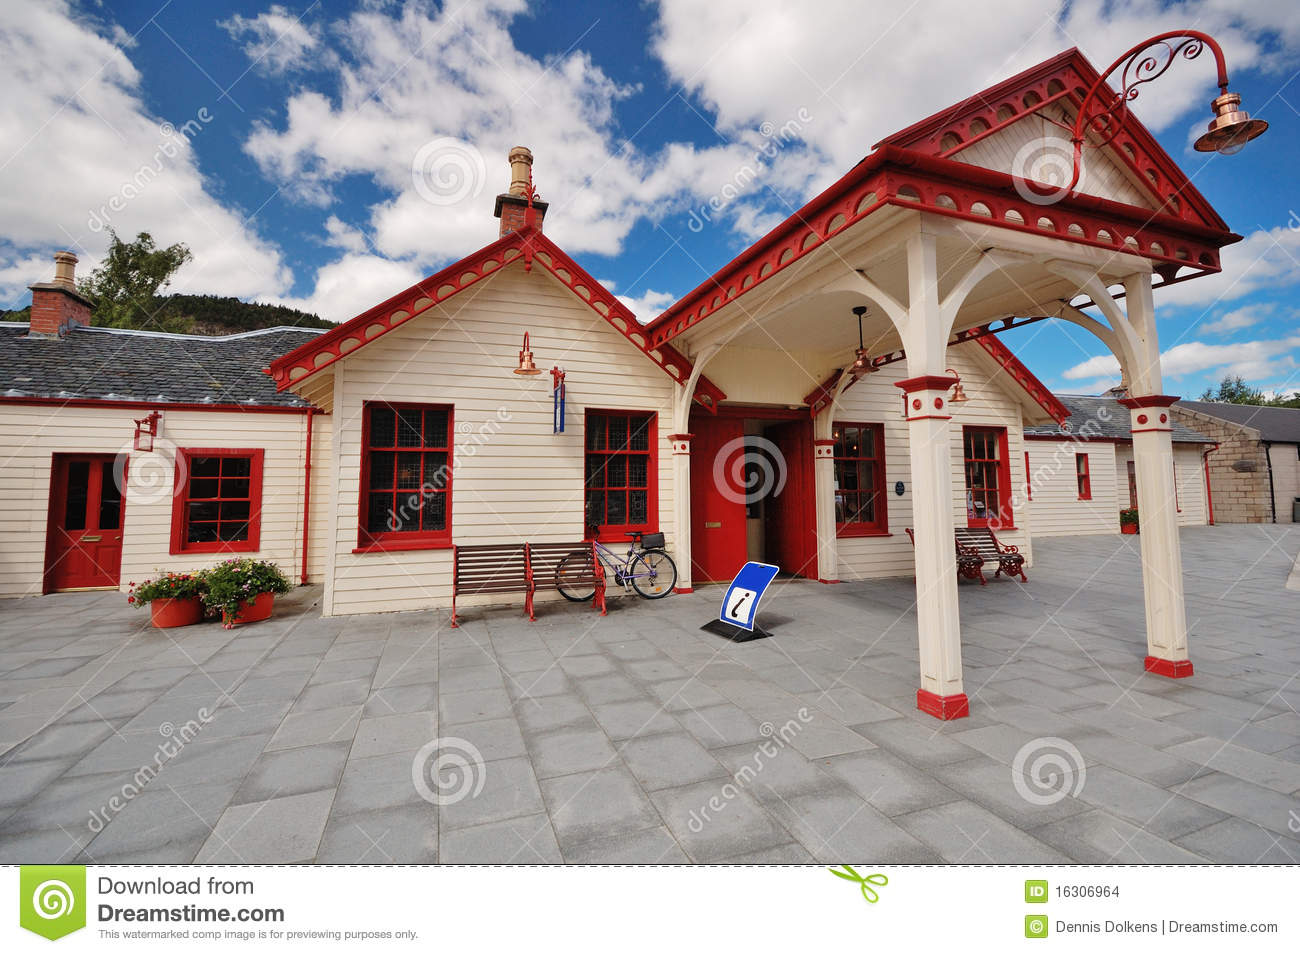 The former Royal Station at Ballater, Scotland